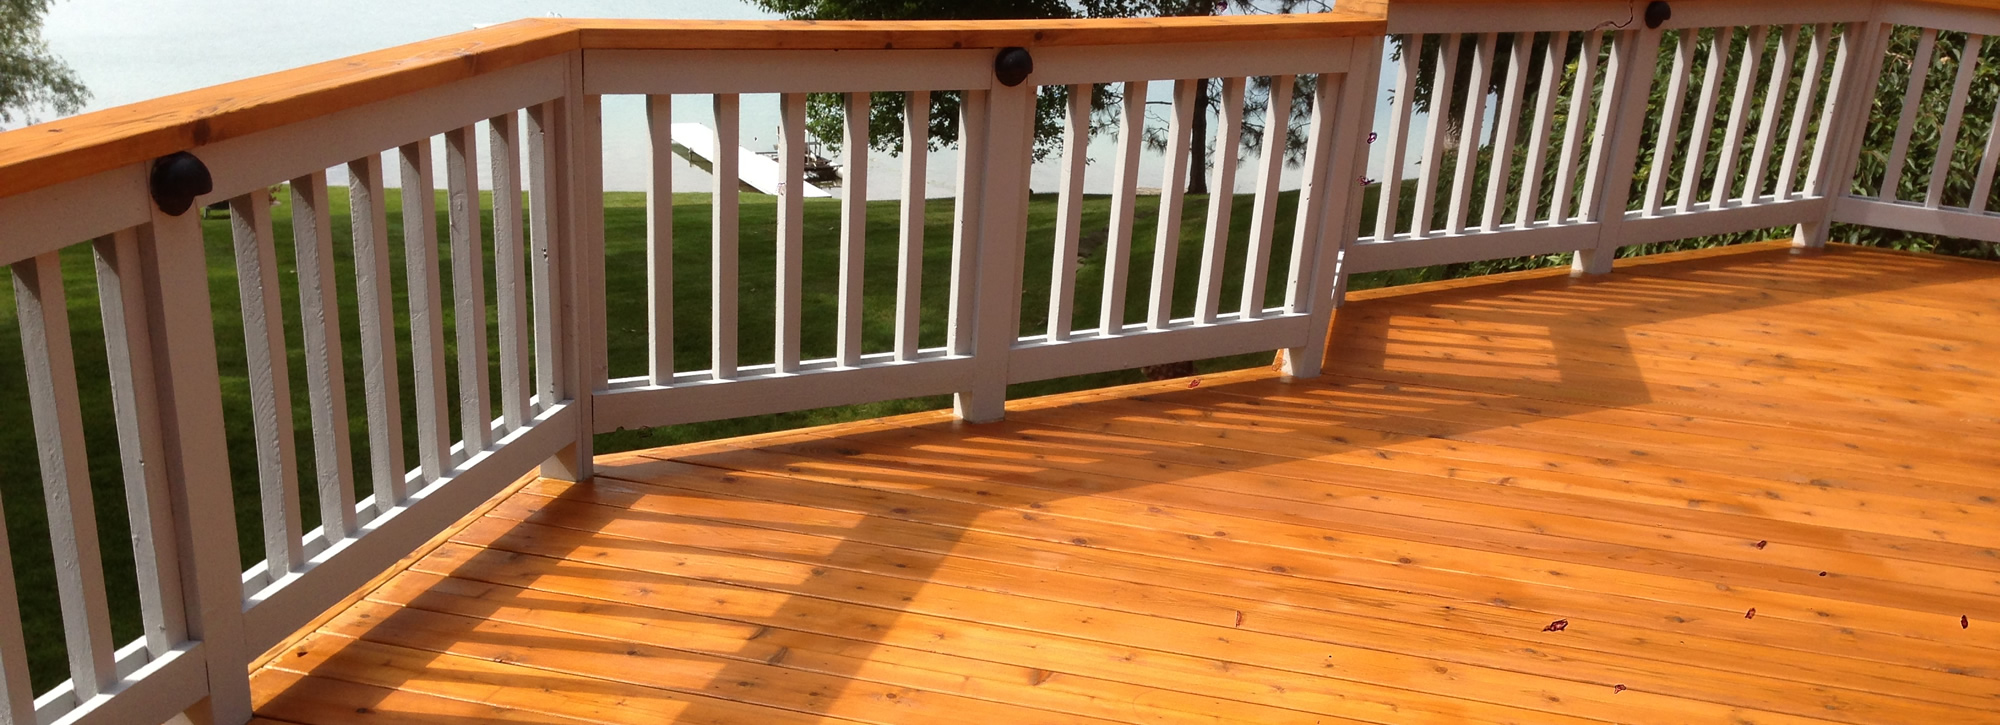 Michigan Deck Restoration, Cleaning and Staining